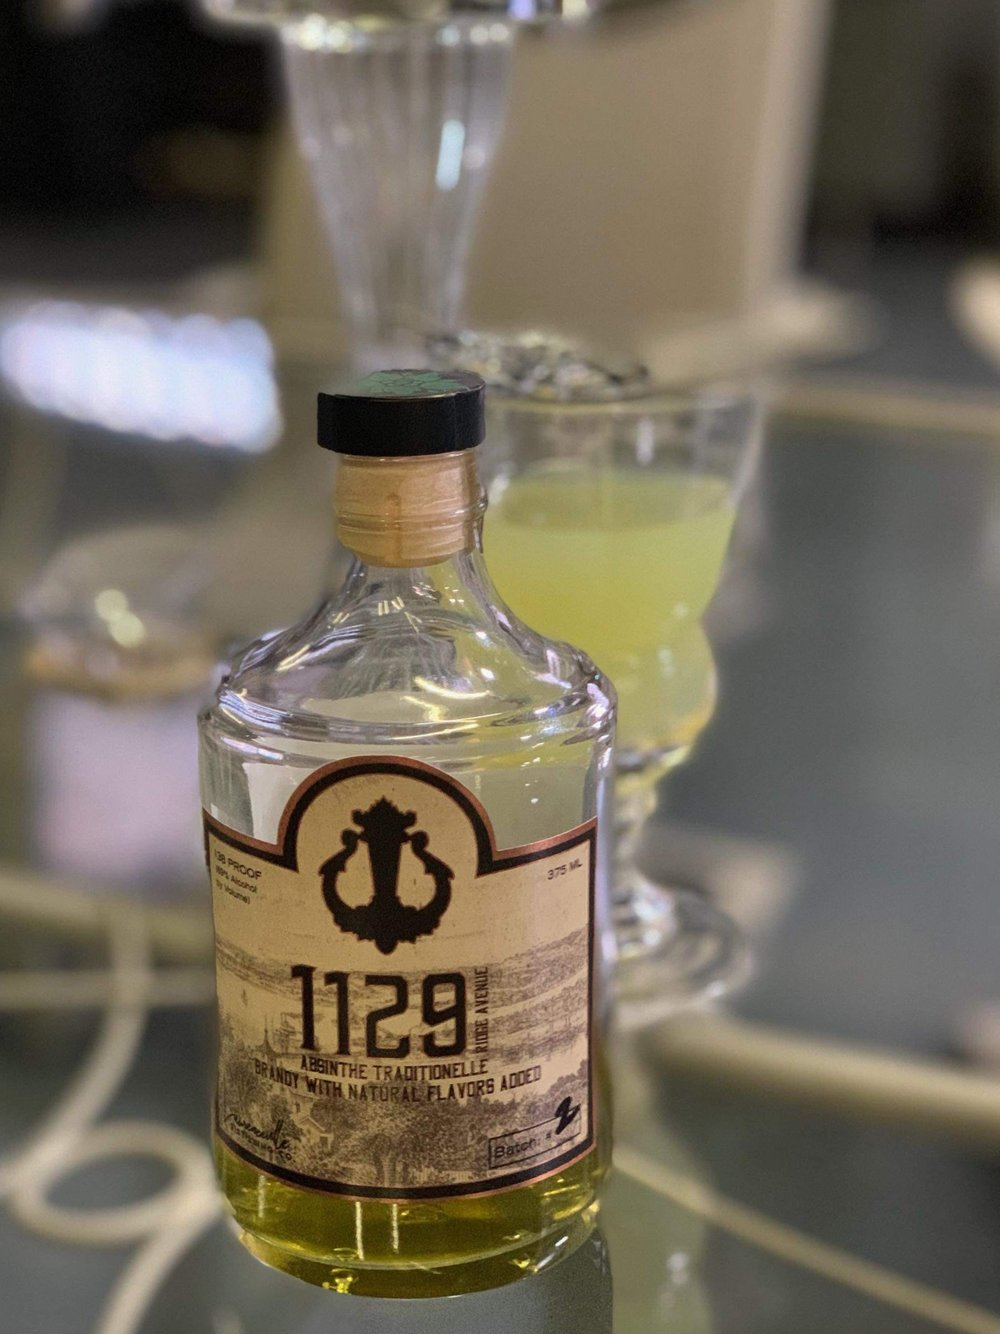 1129 ABSINTHE TRADITIONELLE - ABSINTHE TASTING NOTES